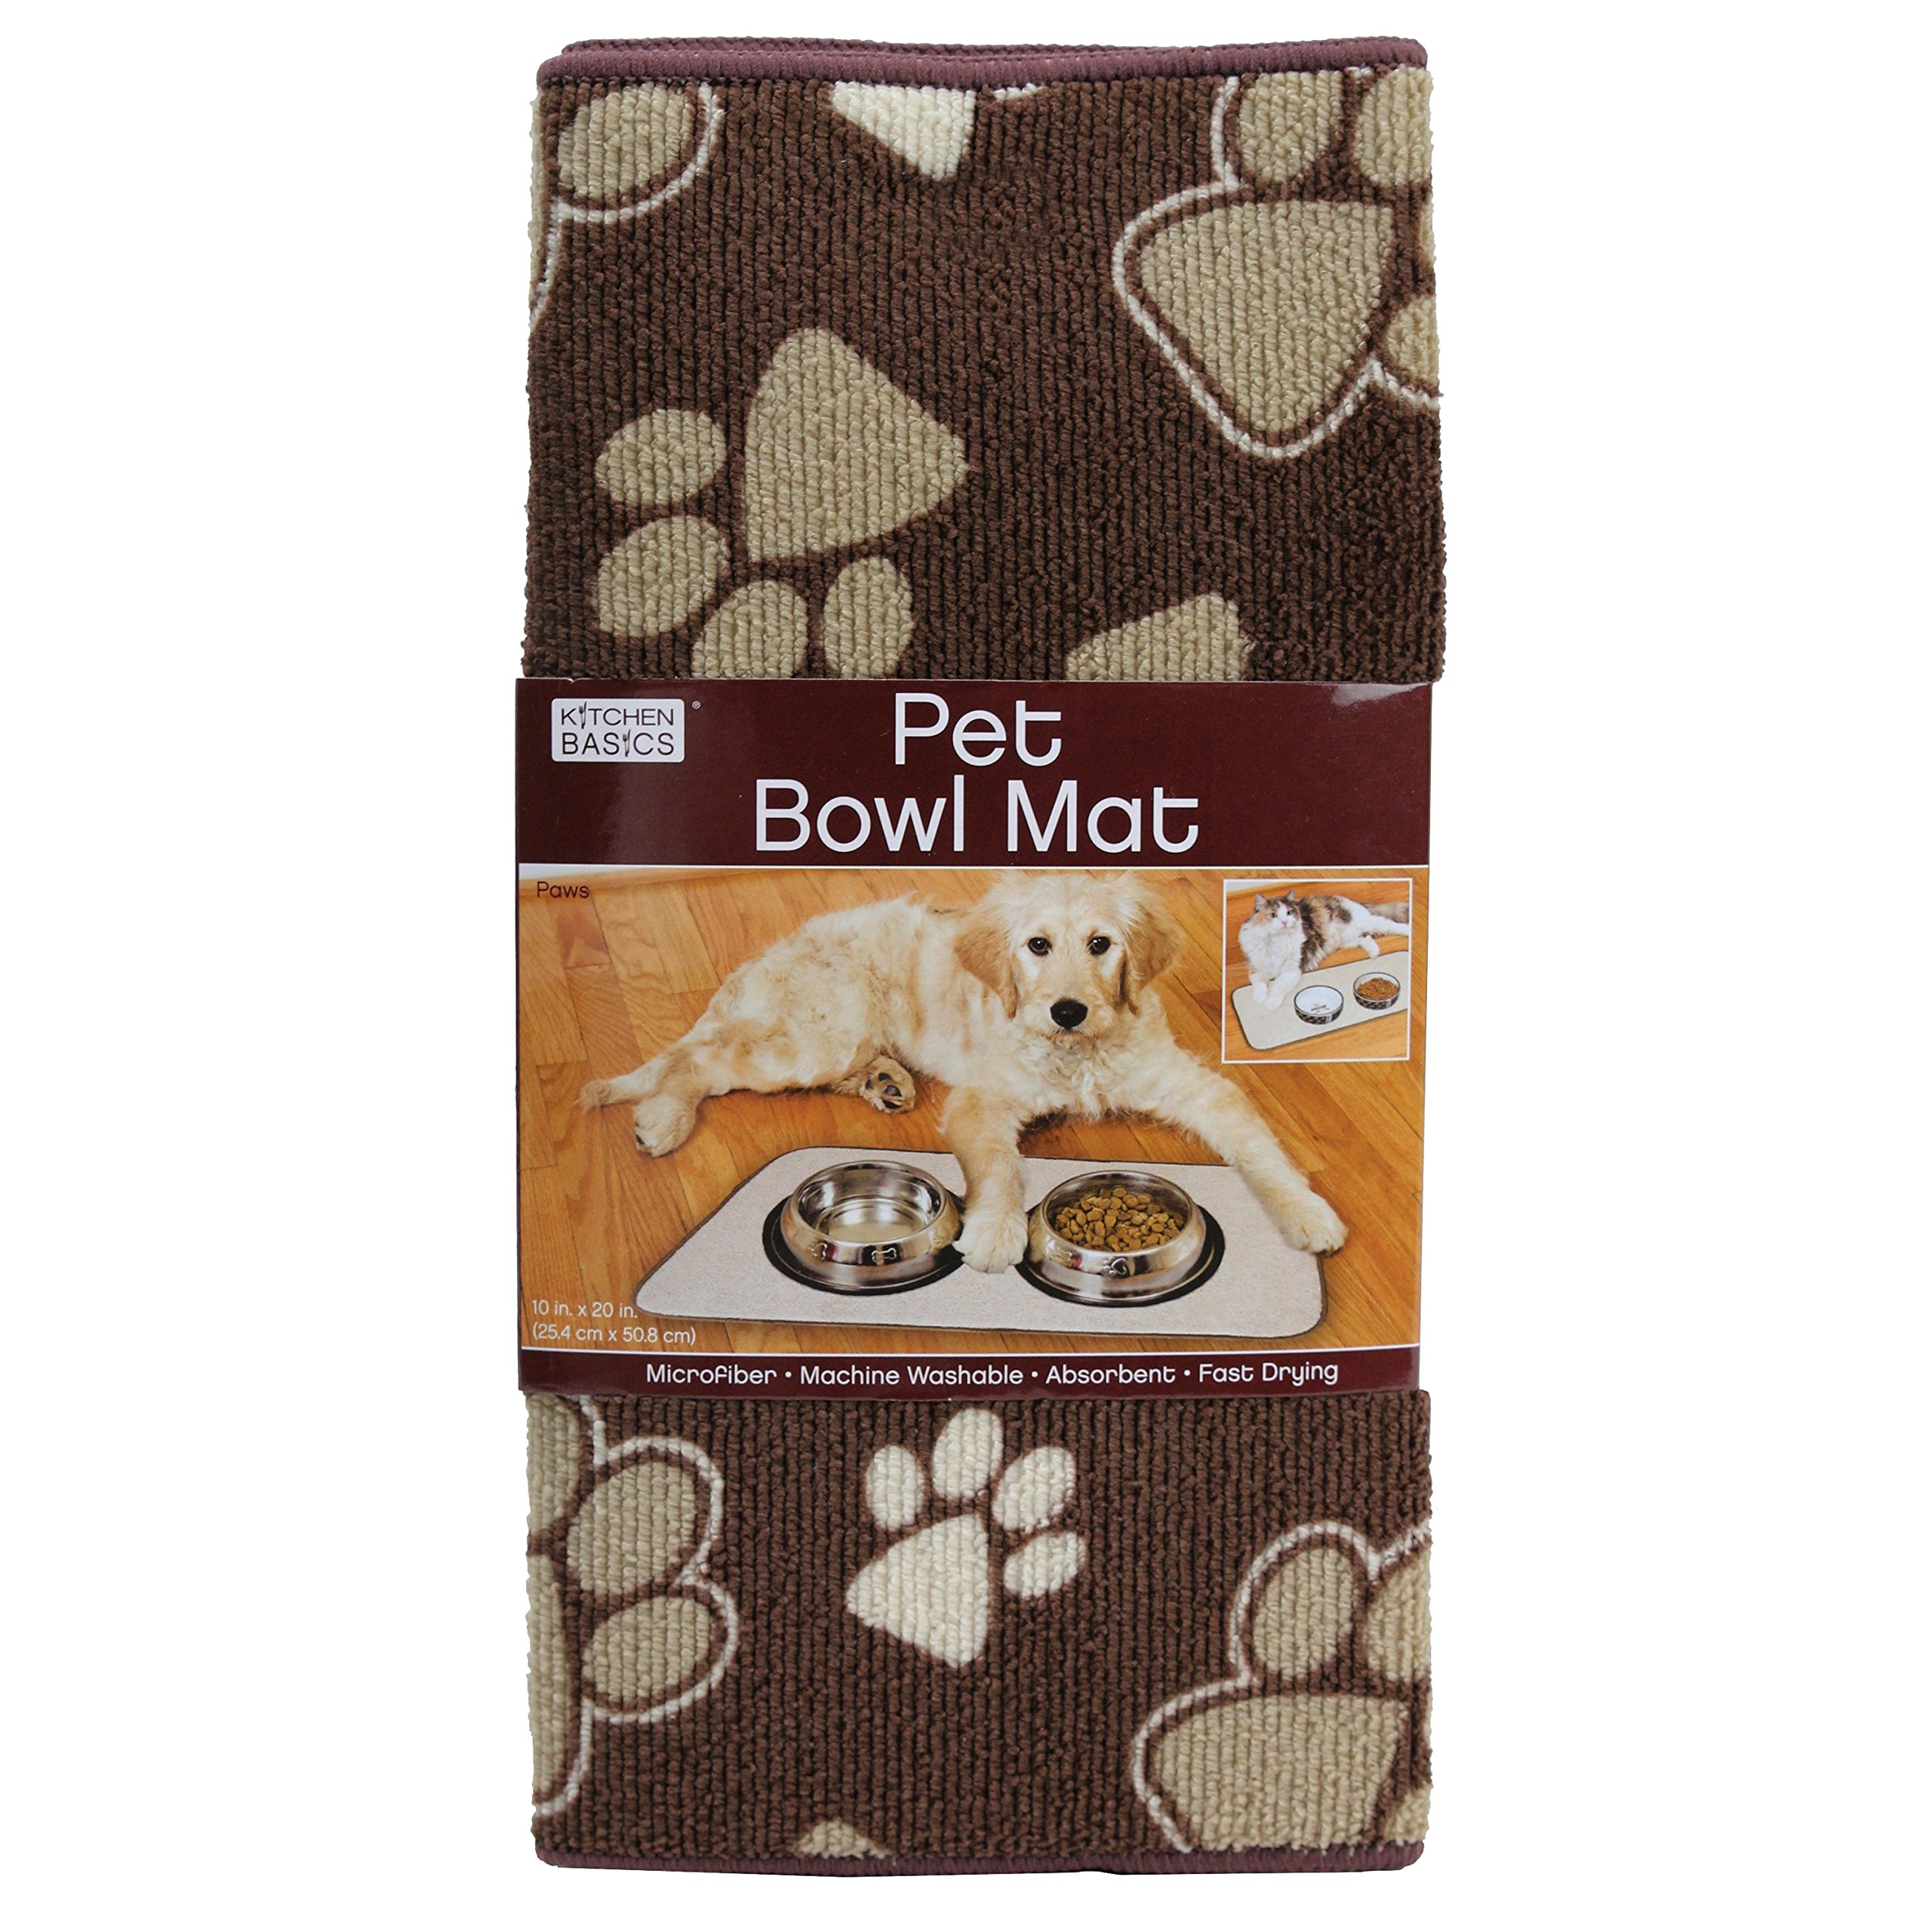 Kitchen Basics Microfiber Anti-Skid Pet Bowl Mat - Paws - 10'' x 20''